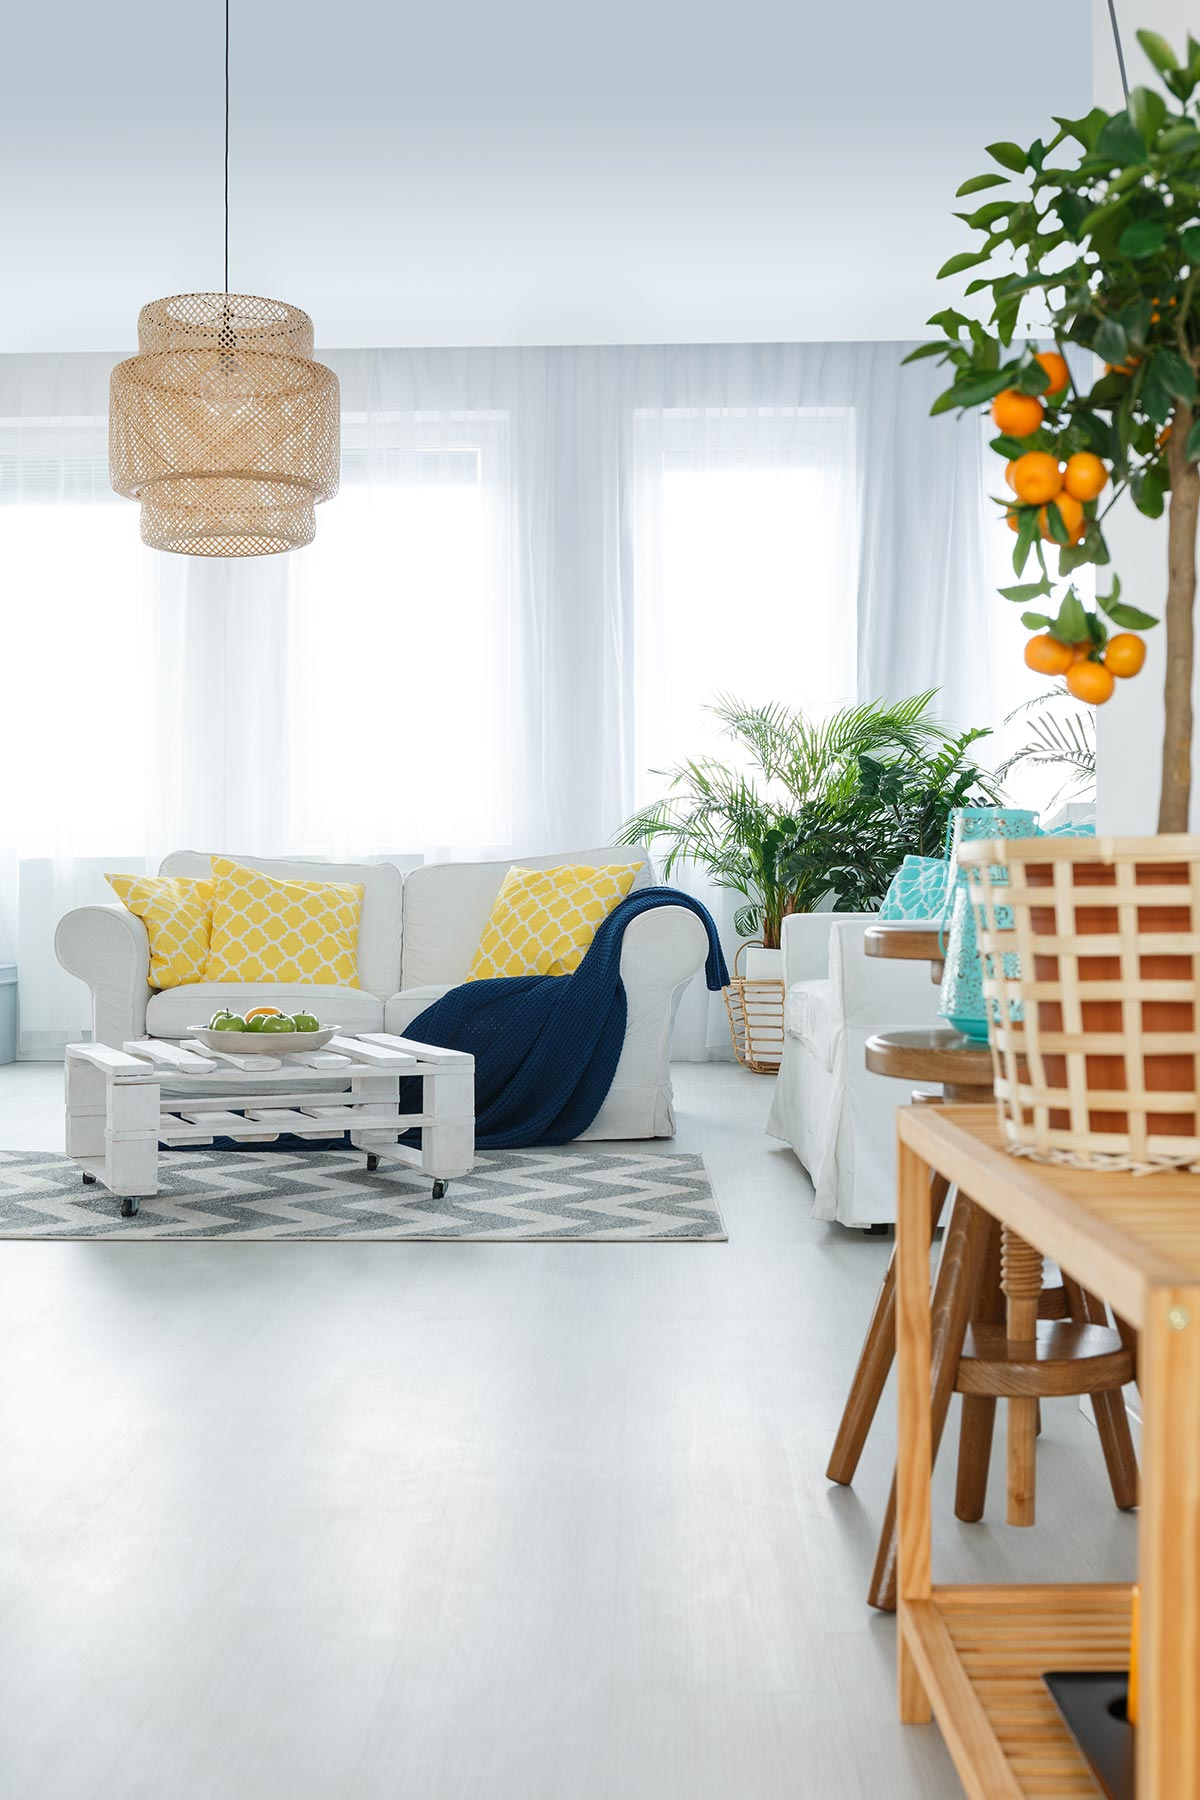 view-of-living-room-in-apartment-PGM2NCT.jpg